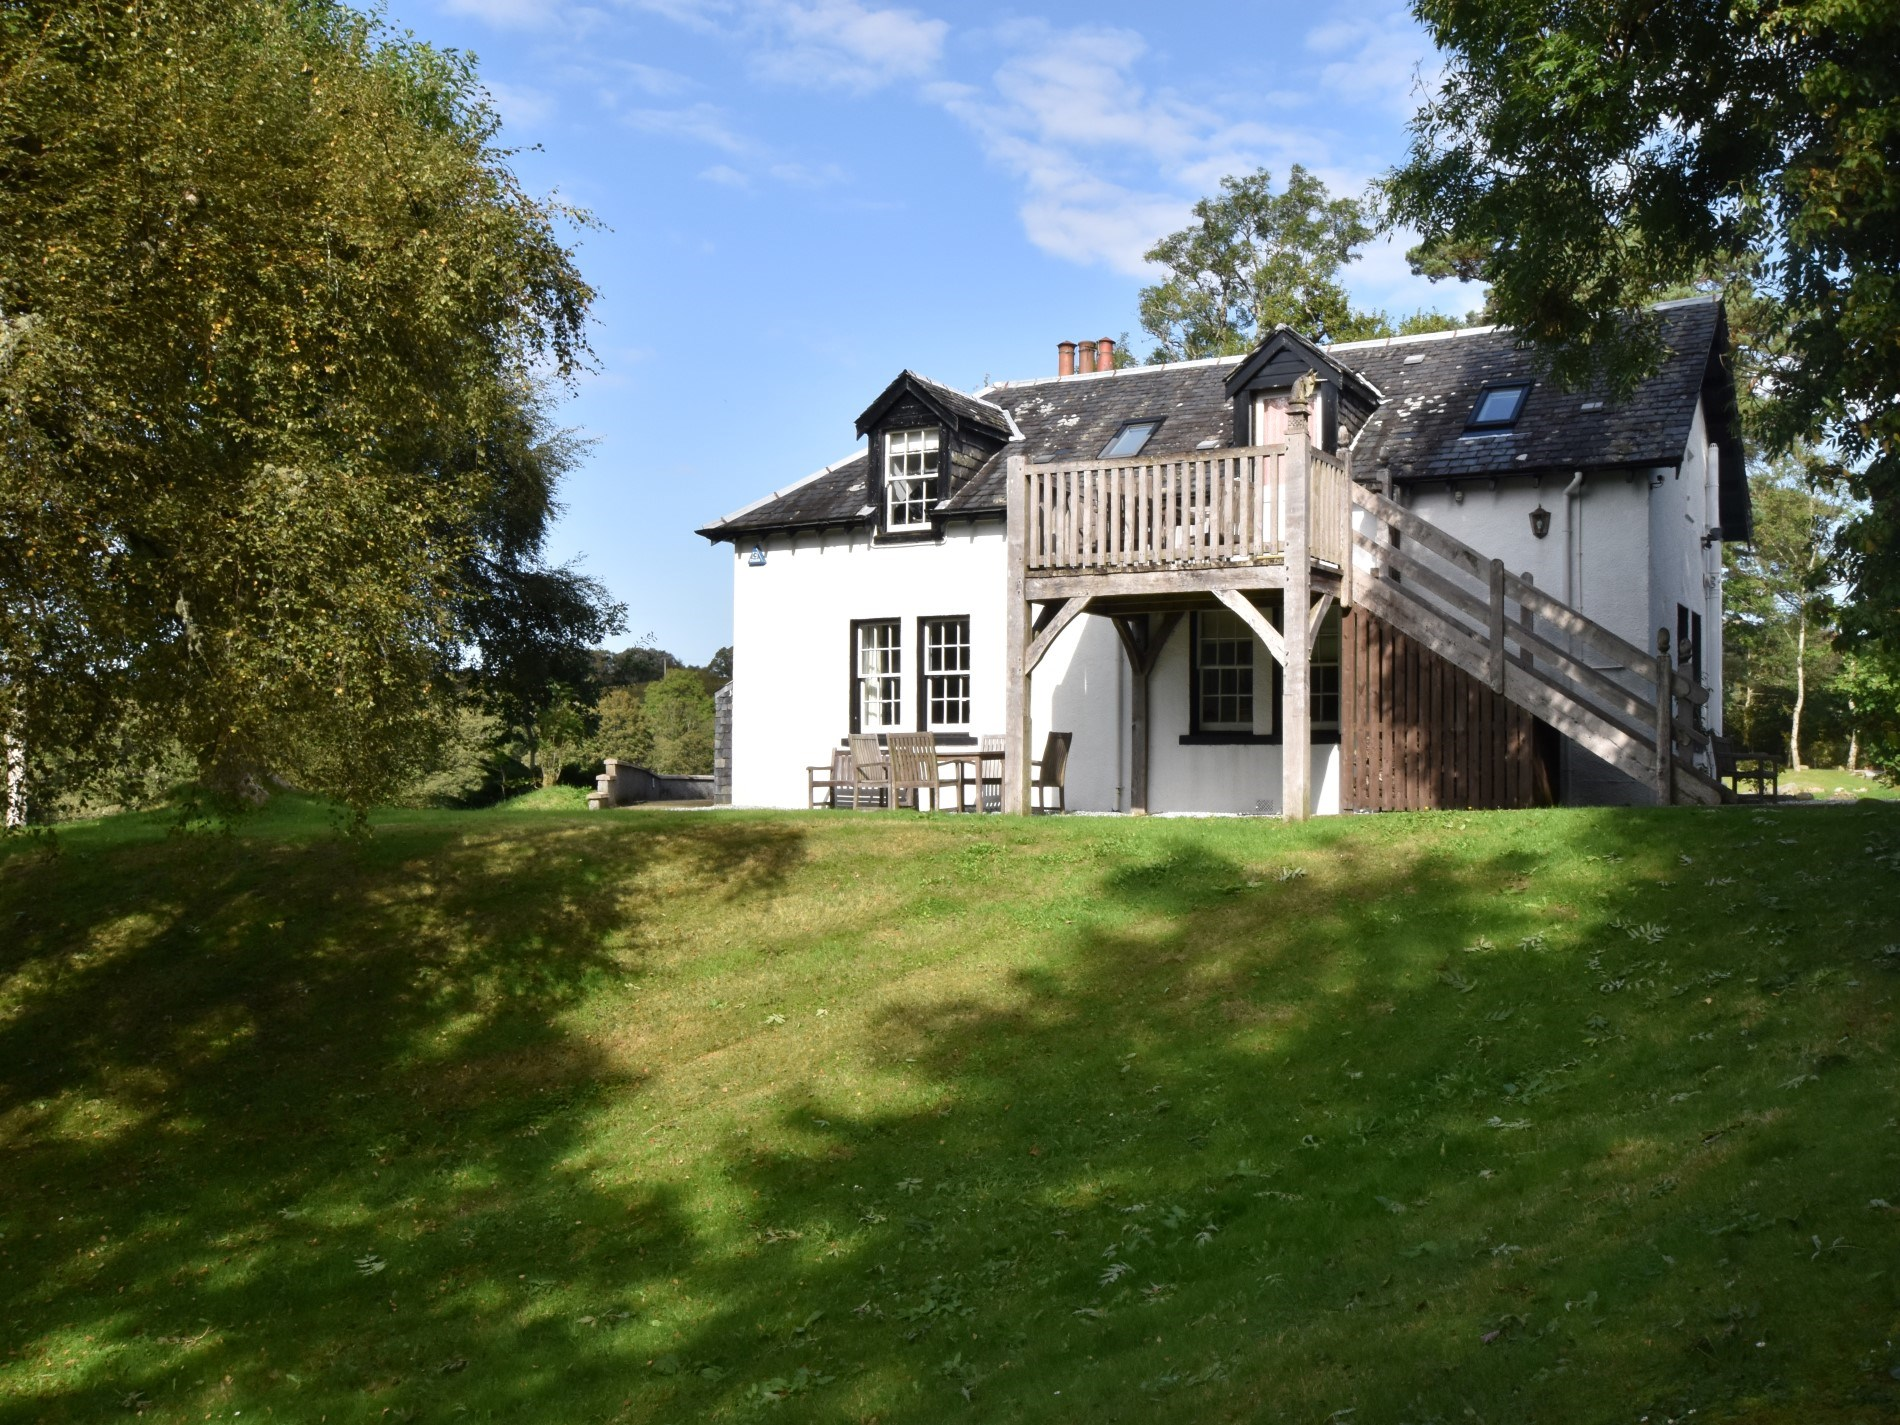 1 Bedroom Cottage in Appin, Inverness, Loch Ness & Nairn, Highlands